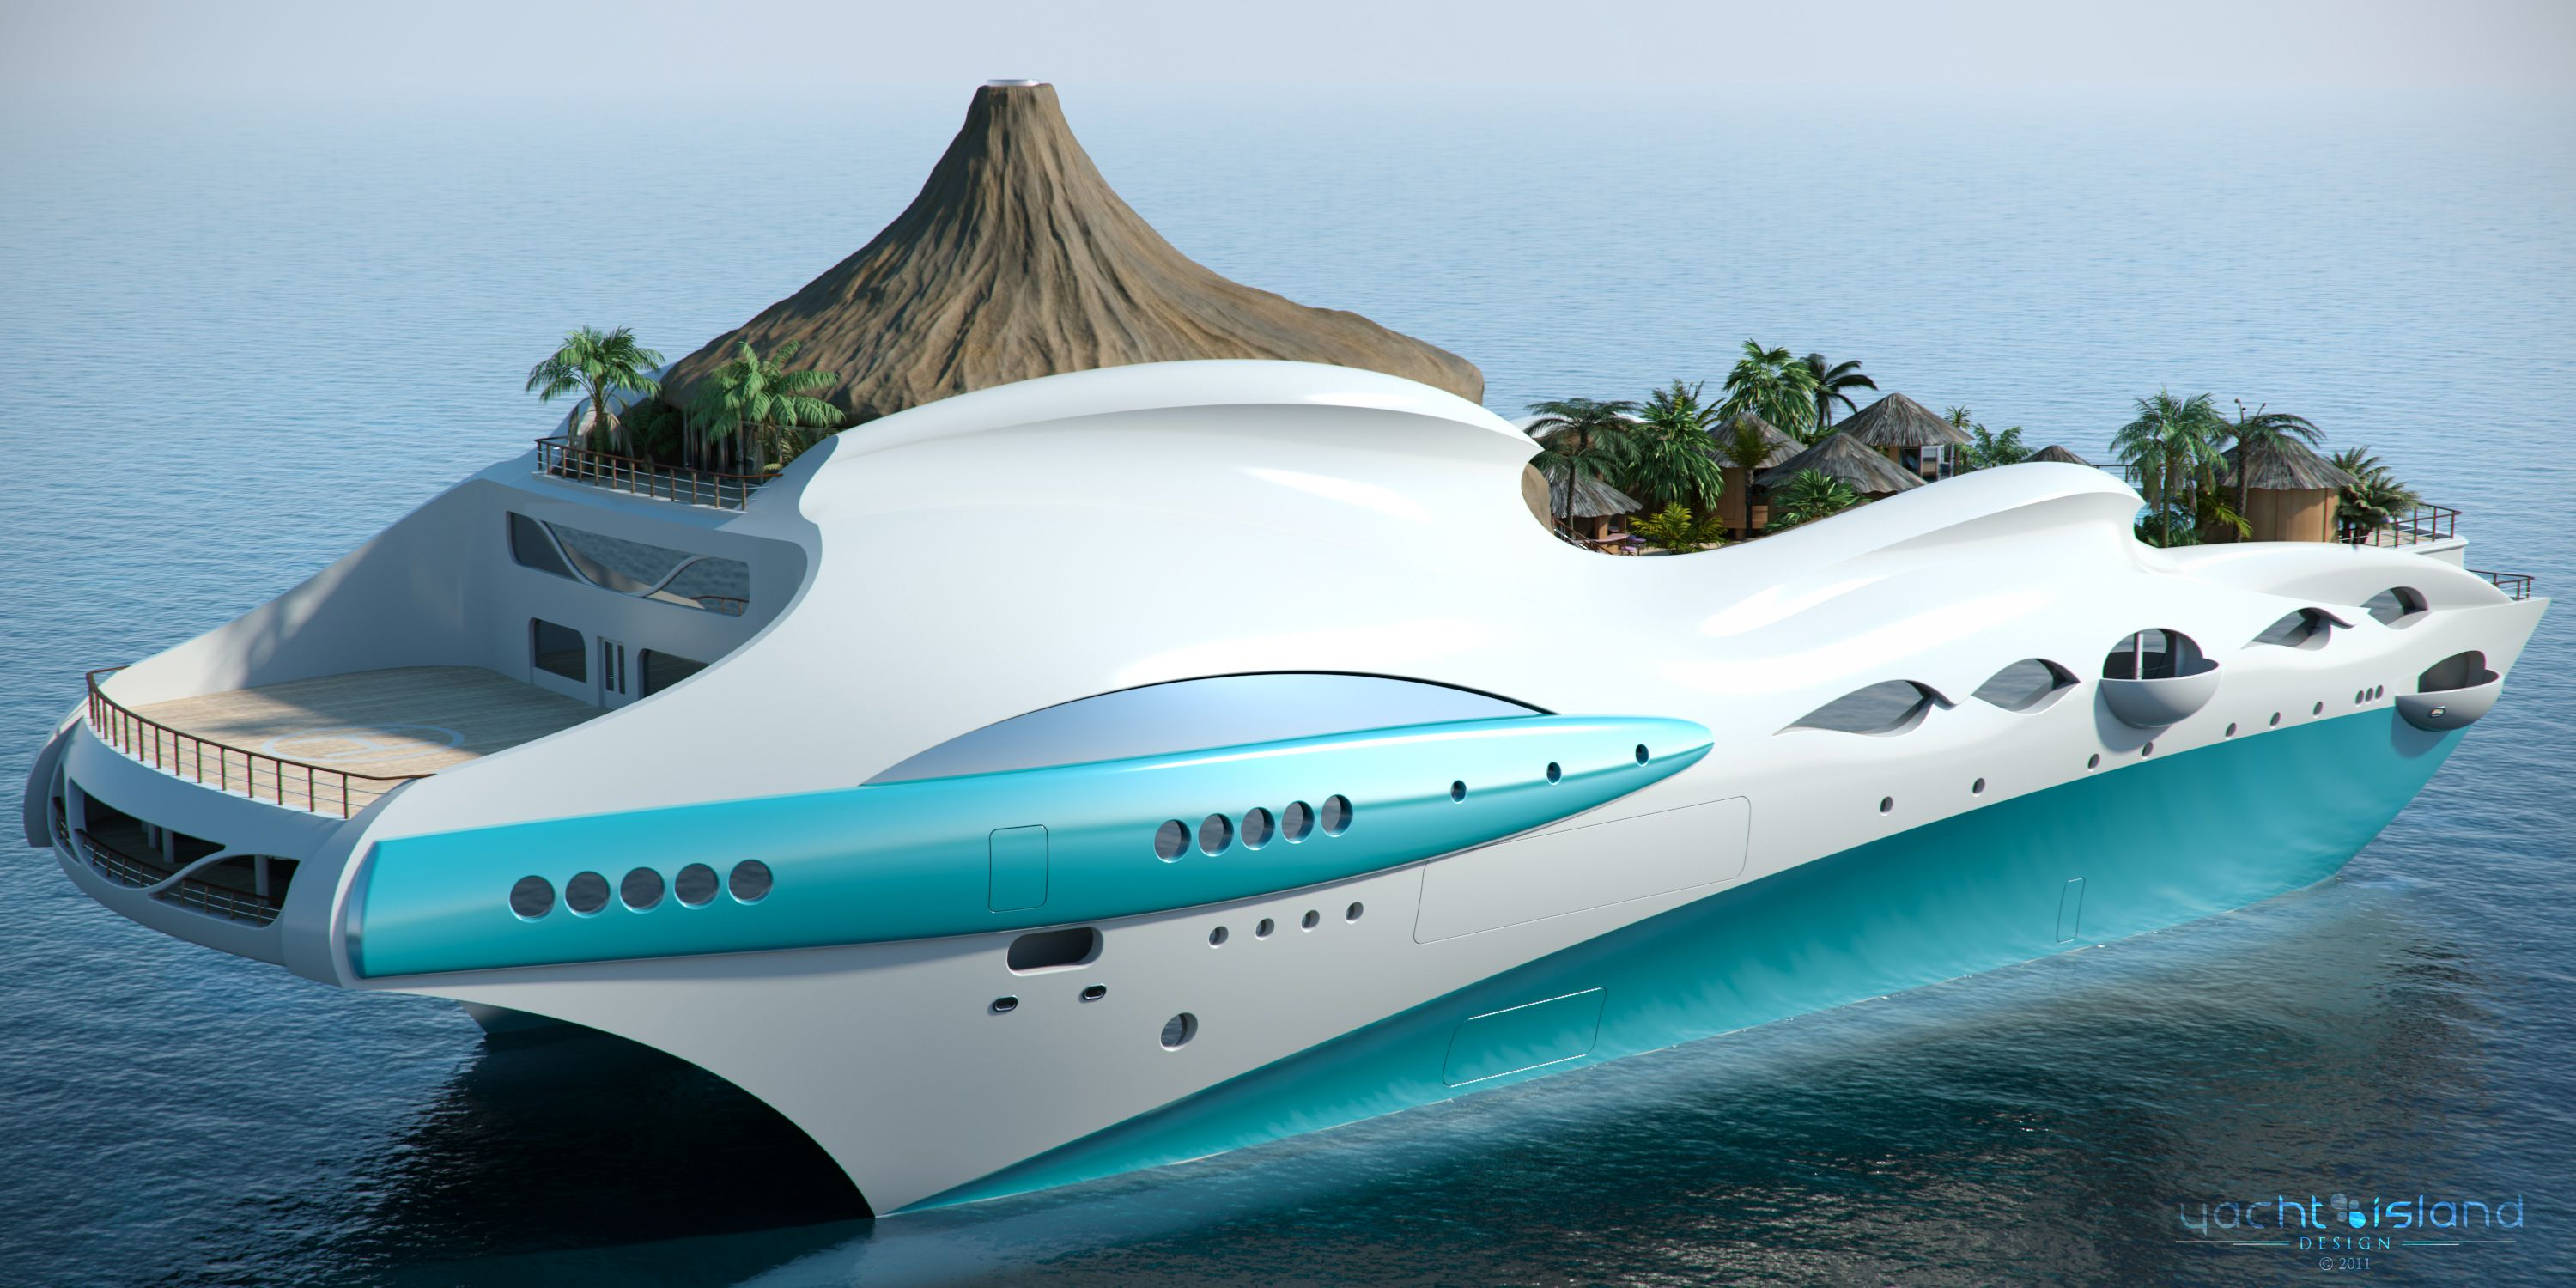 UK based yacht design company Yacht Island Designs created this floating  tropical island concept called the Tropical Island Paradise.